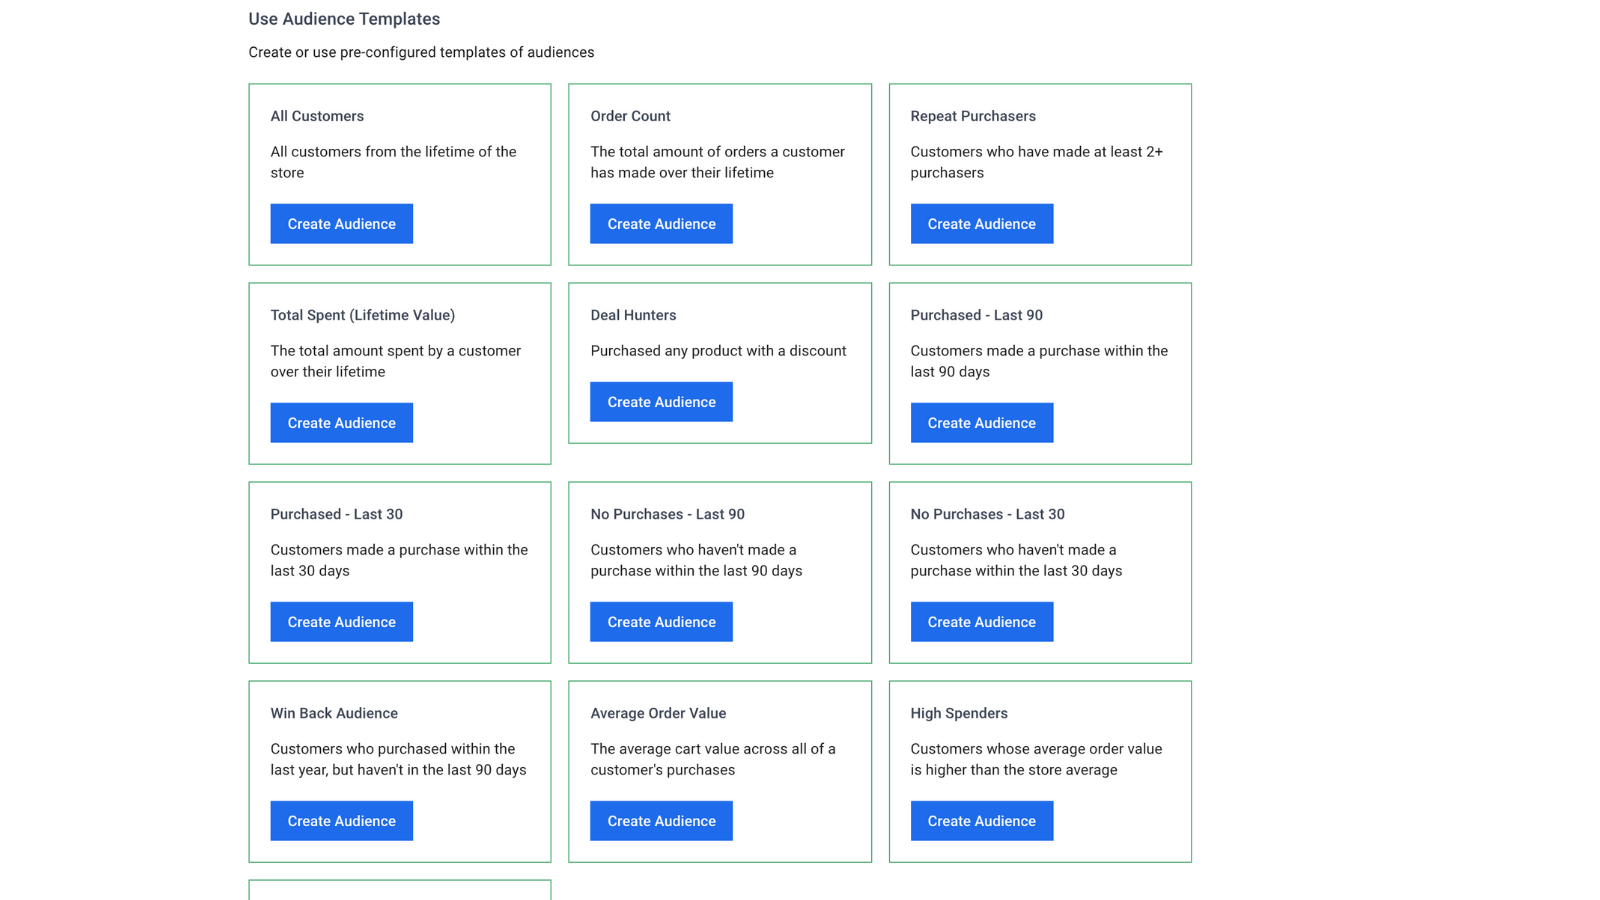 Audience Templates